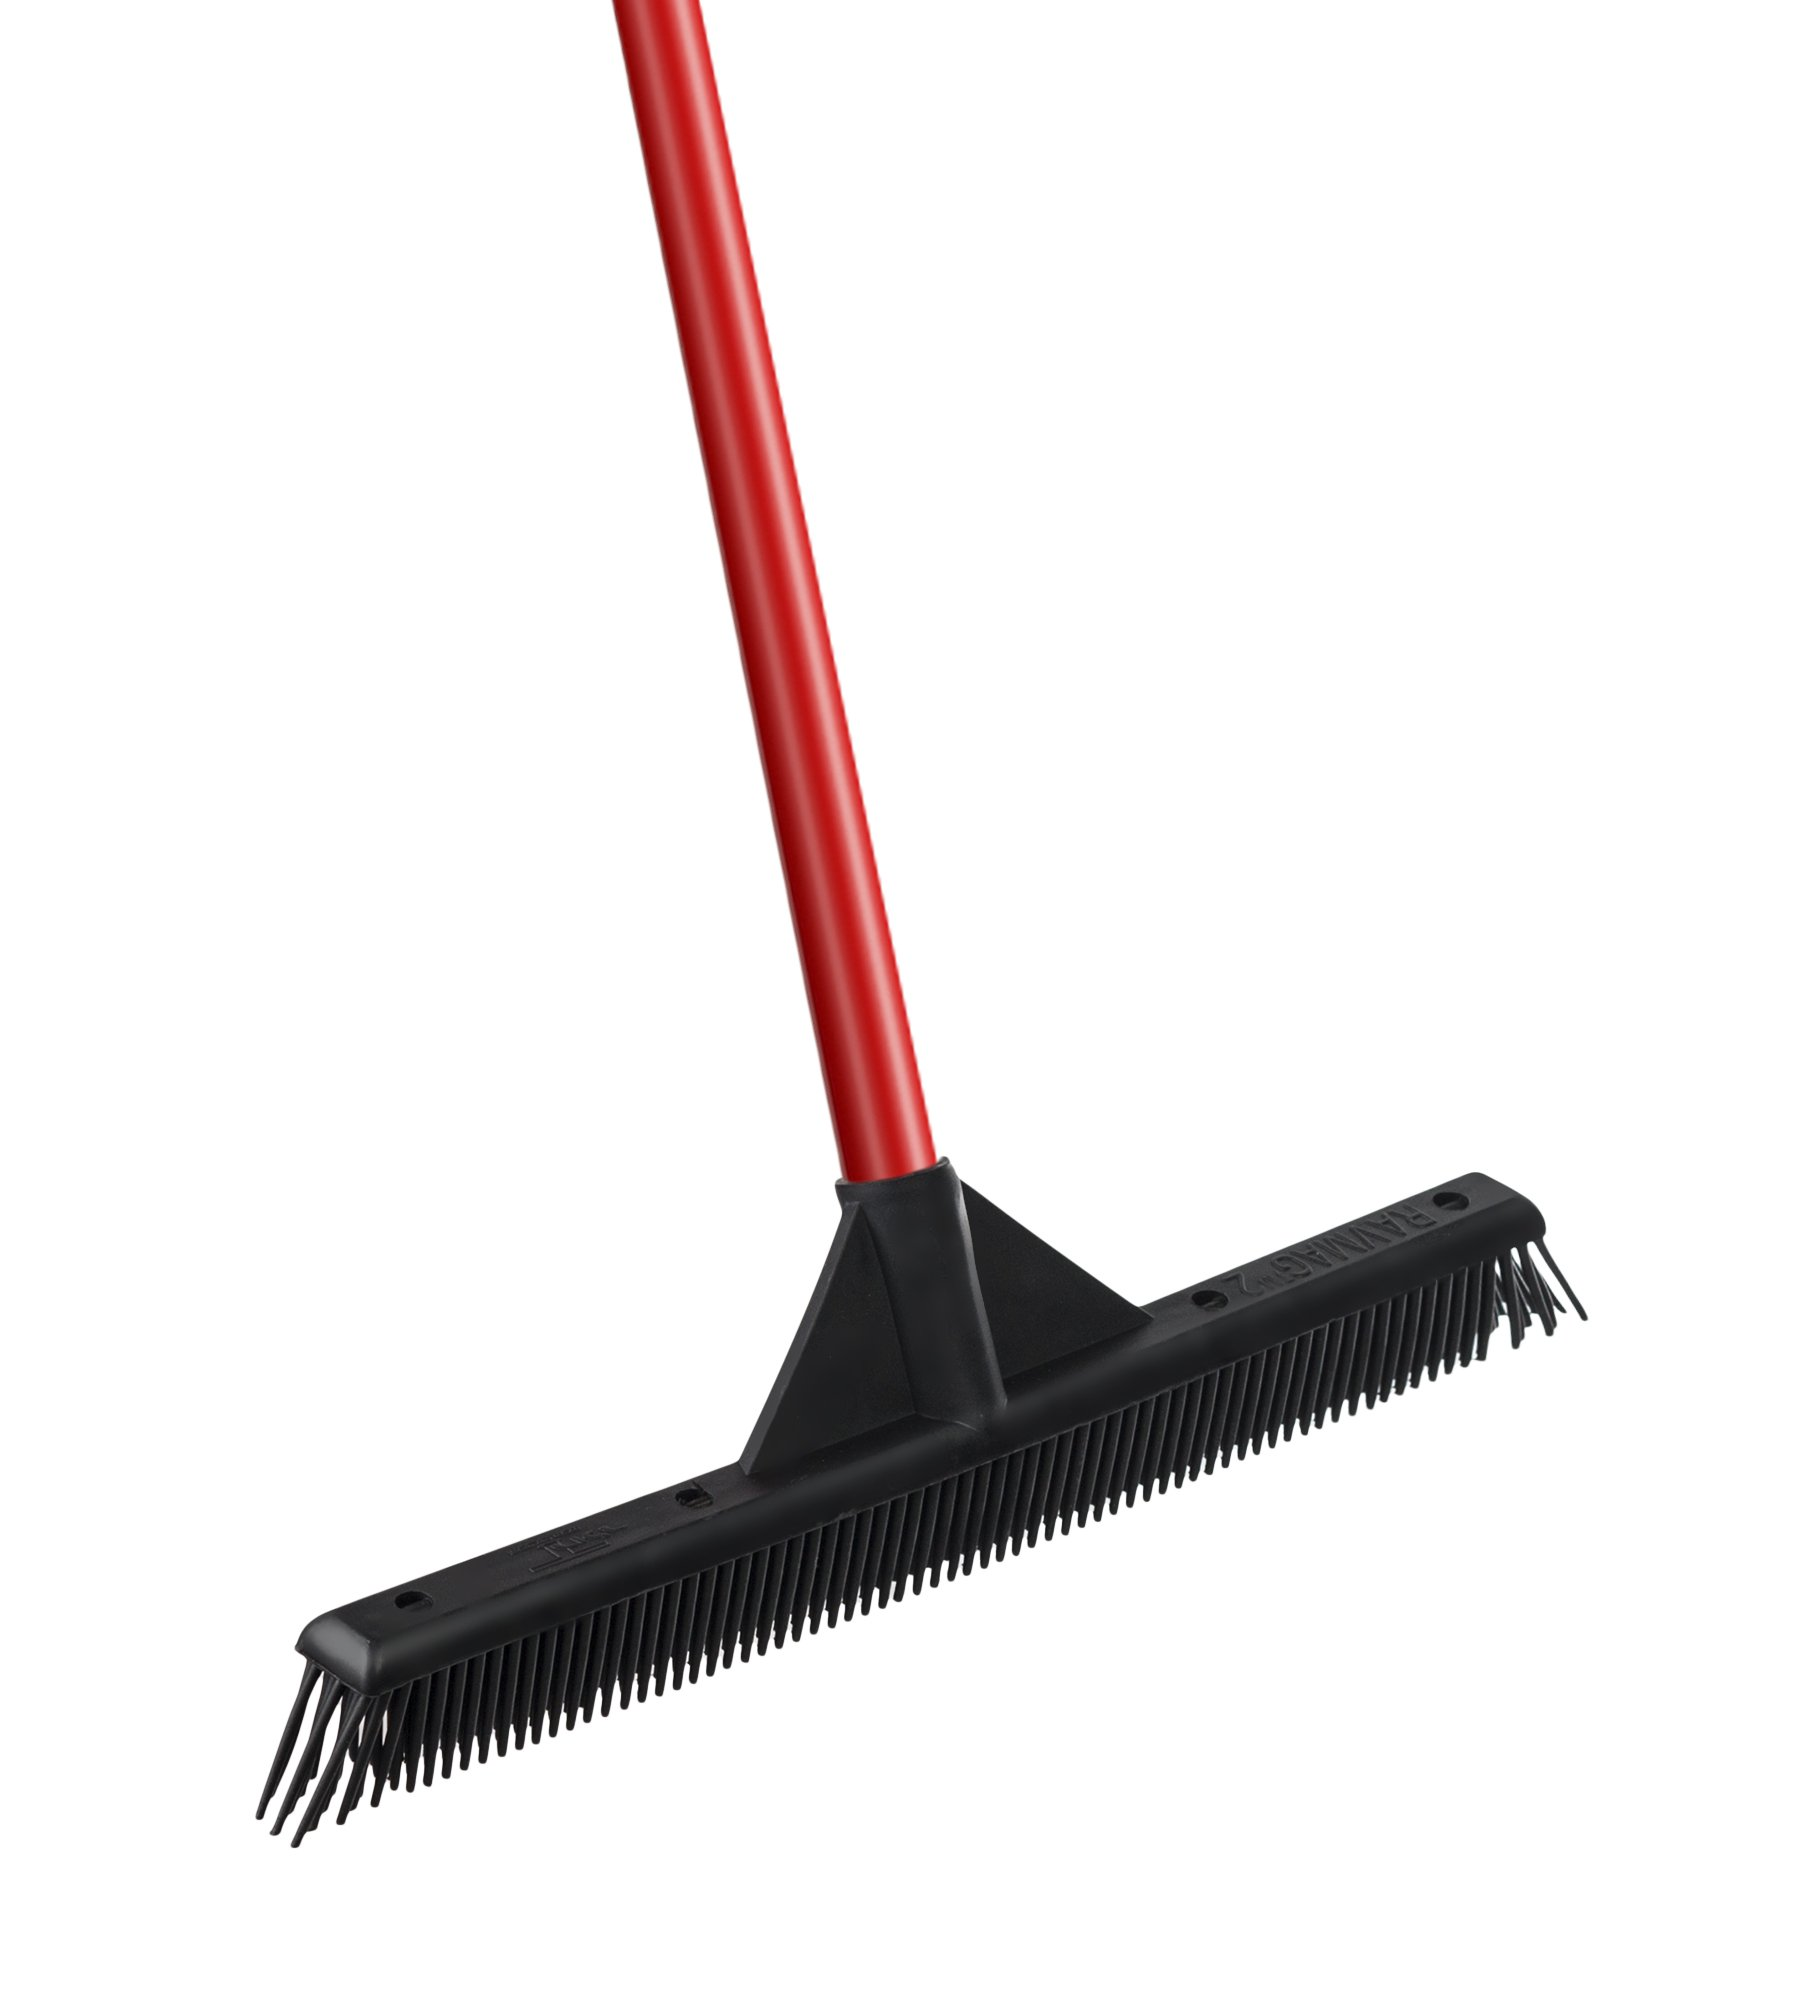 RAVMAG Rubber Broom Lightweight- Slanted Soft Bristles- Picks up Dust & Hair- Perfect for Cleaning Hardwood, Vinyl Carpet Cement Tile Windows- Scratch Free! by RAVMAG